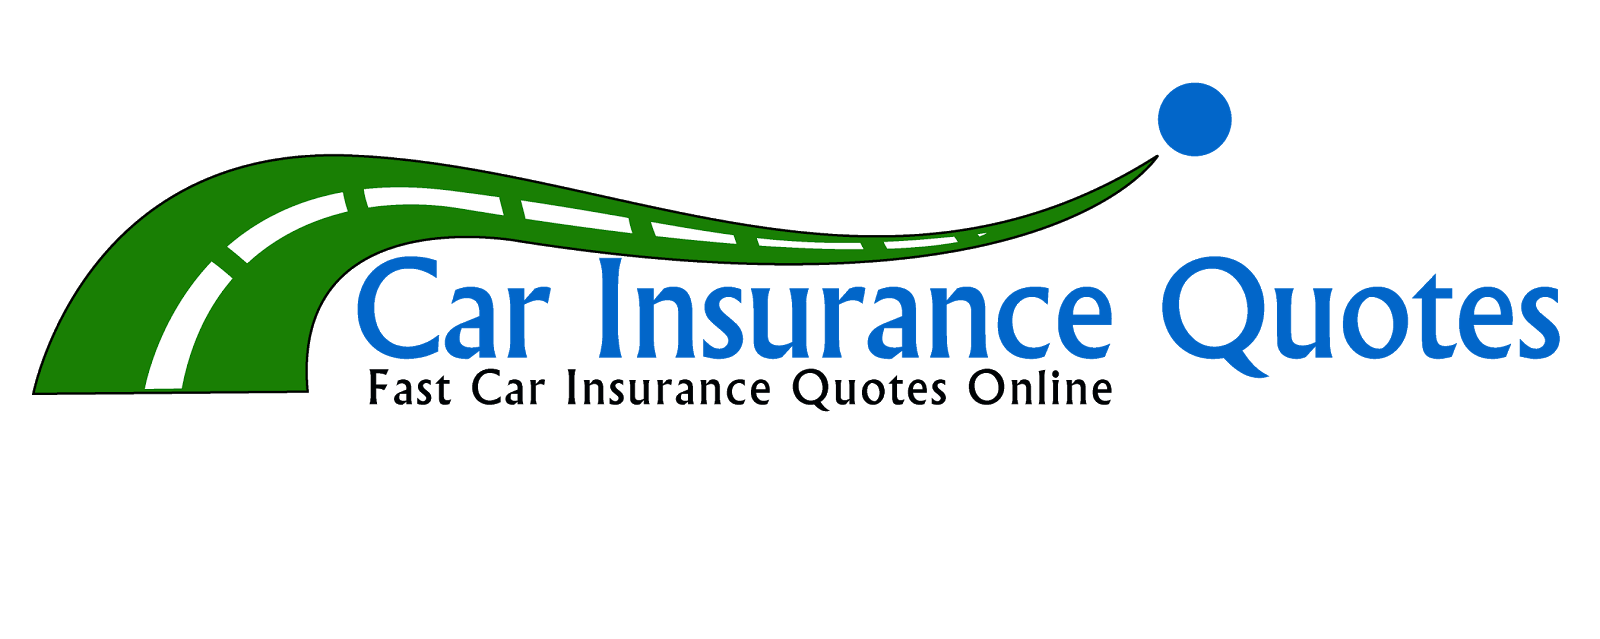 Car Insurance Quote Pleasing Free Car Insurance Quotes Online  Places To Visit  Pinterest . Inspiration